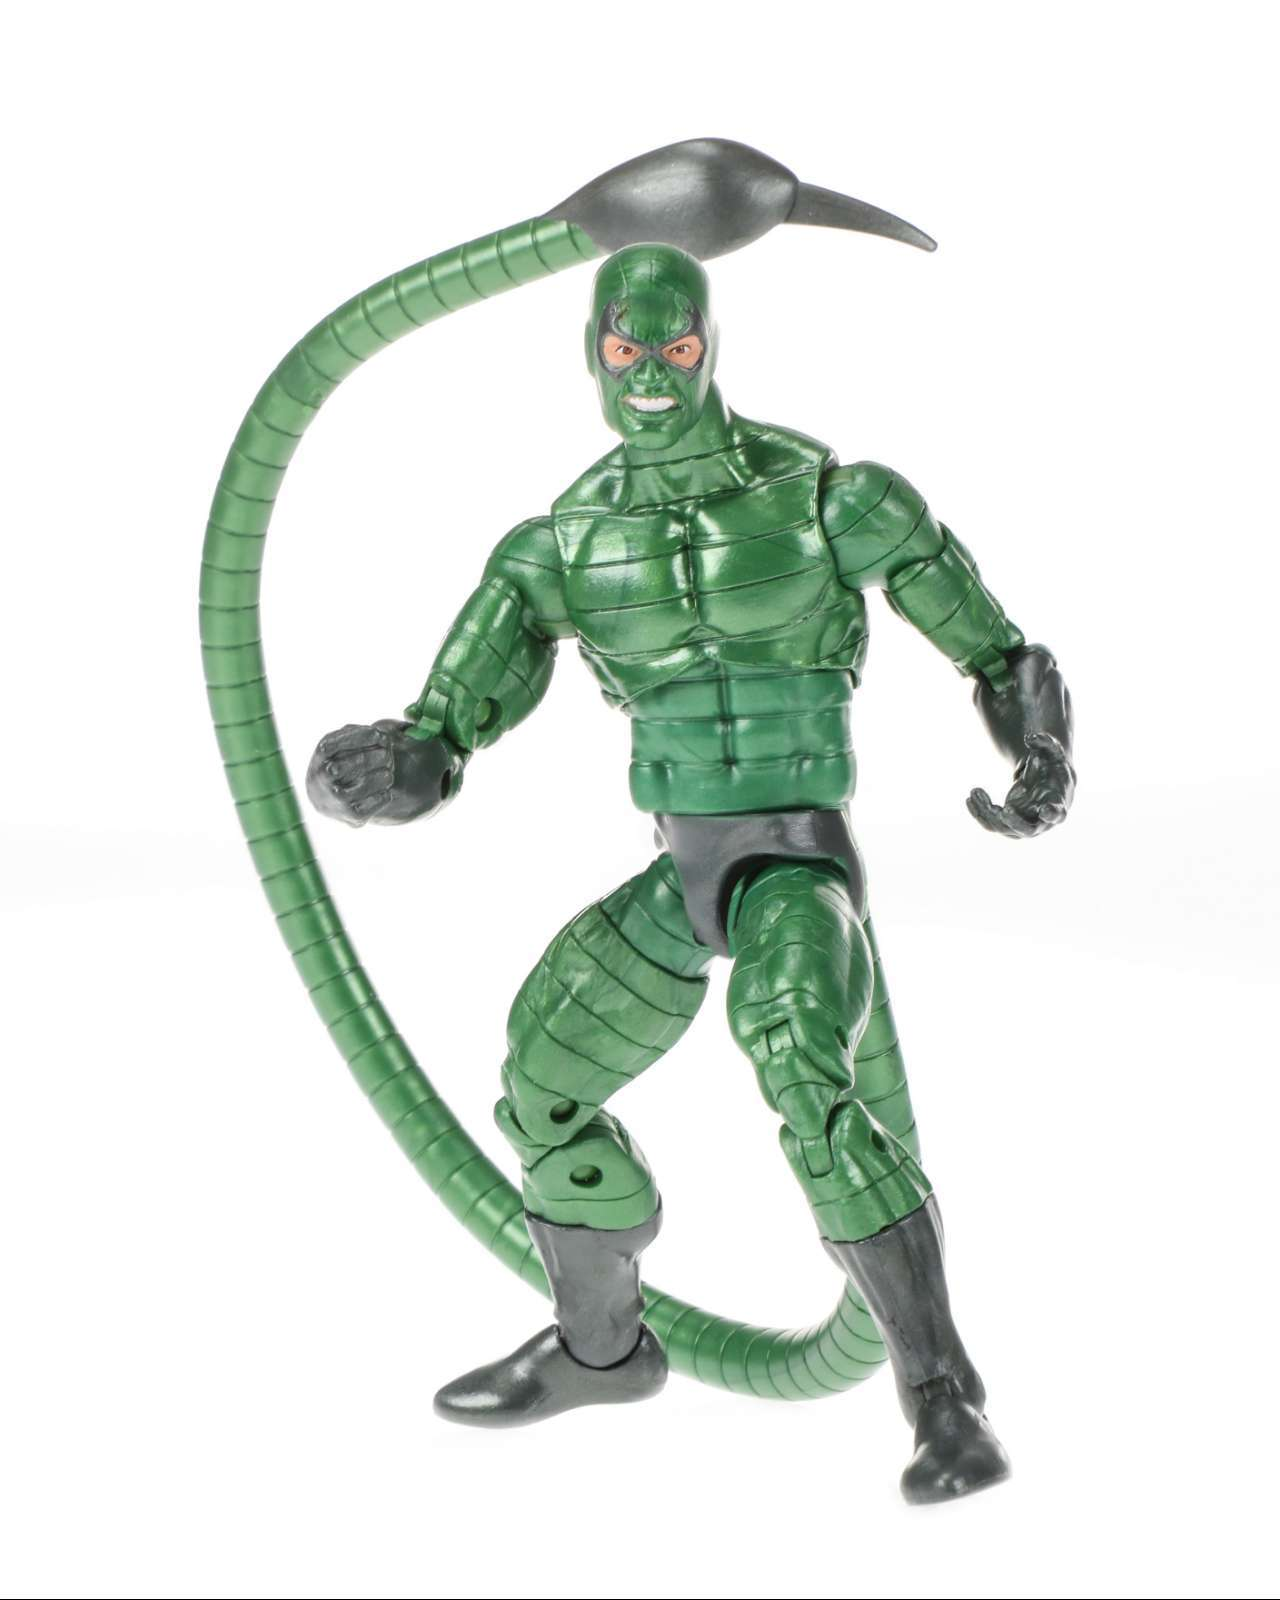 Marvel Spider-Man Legends Series 6-Inch Scorpion Figure oop